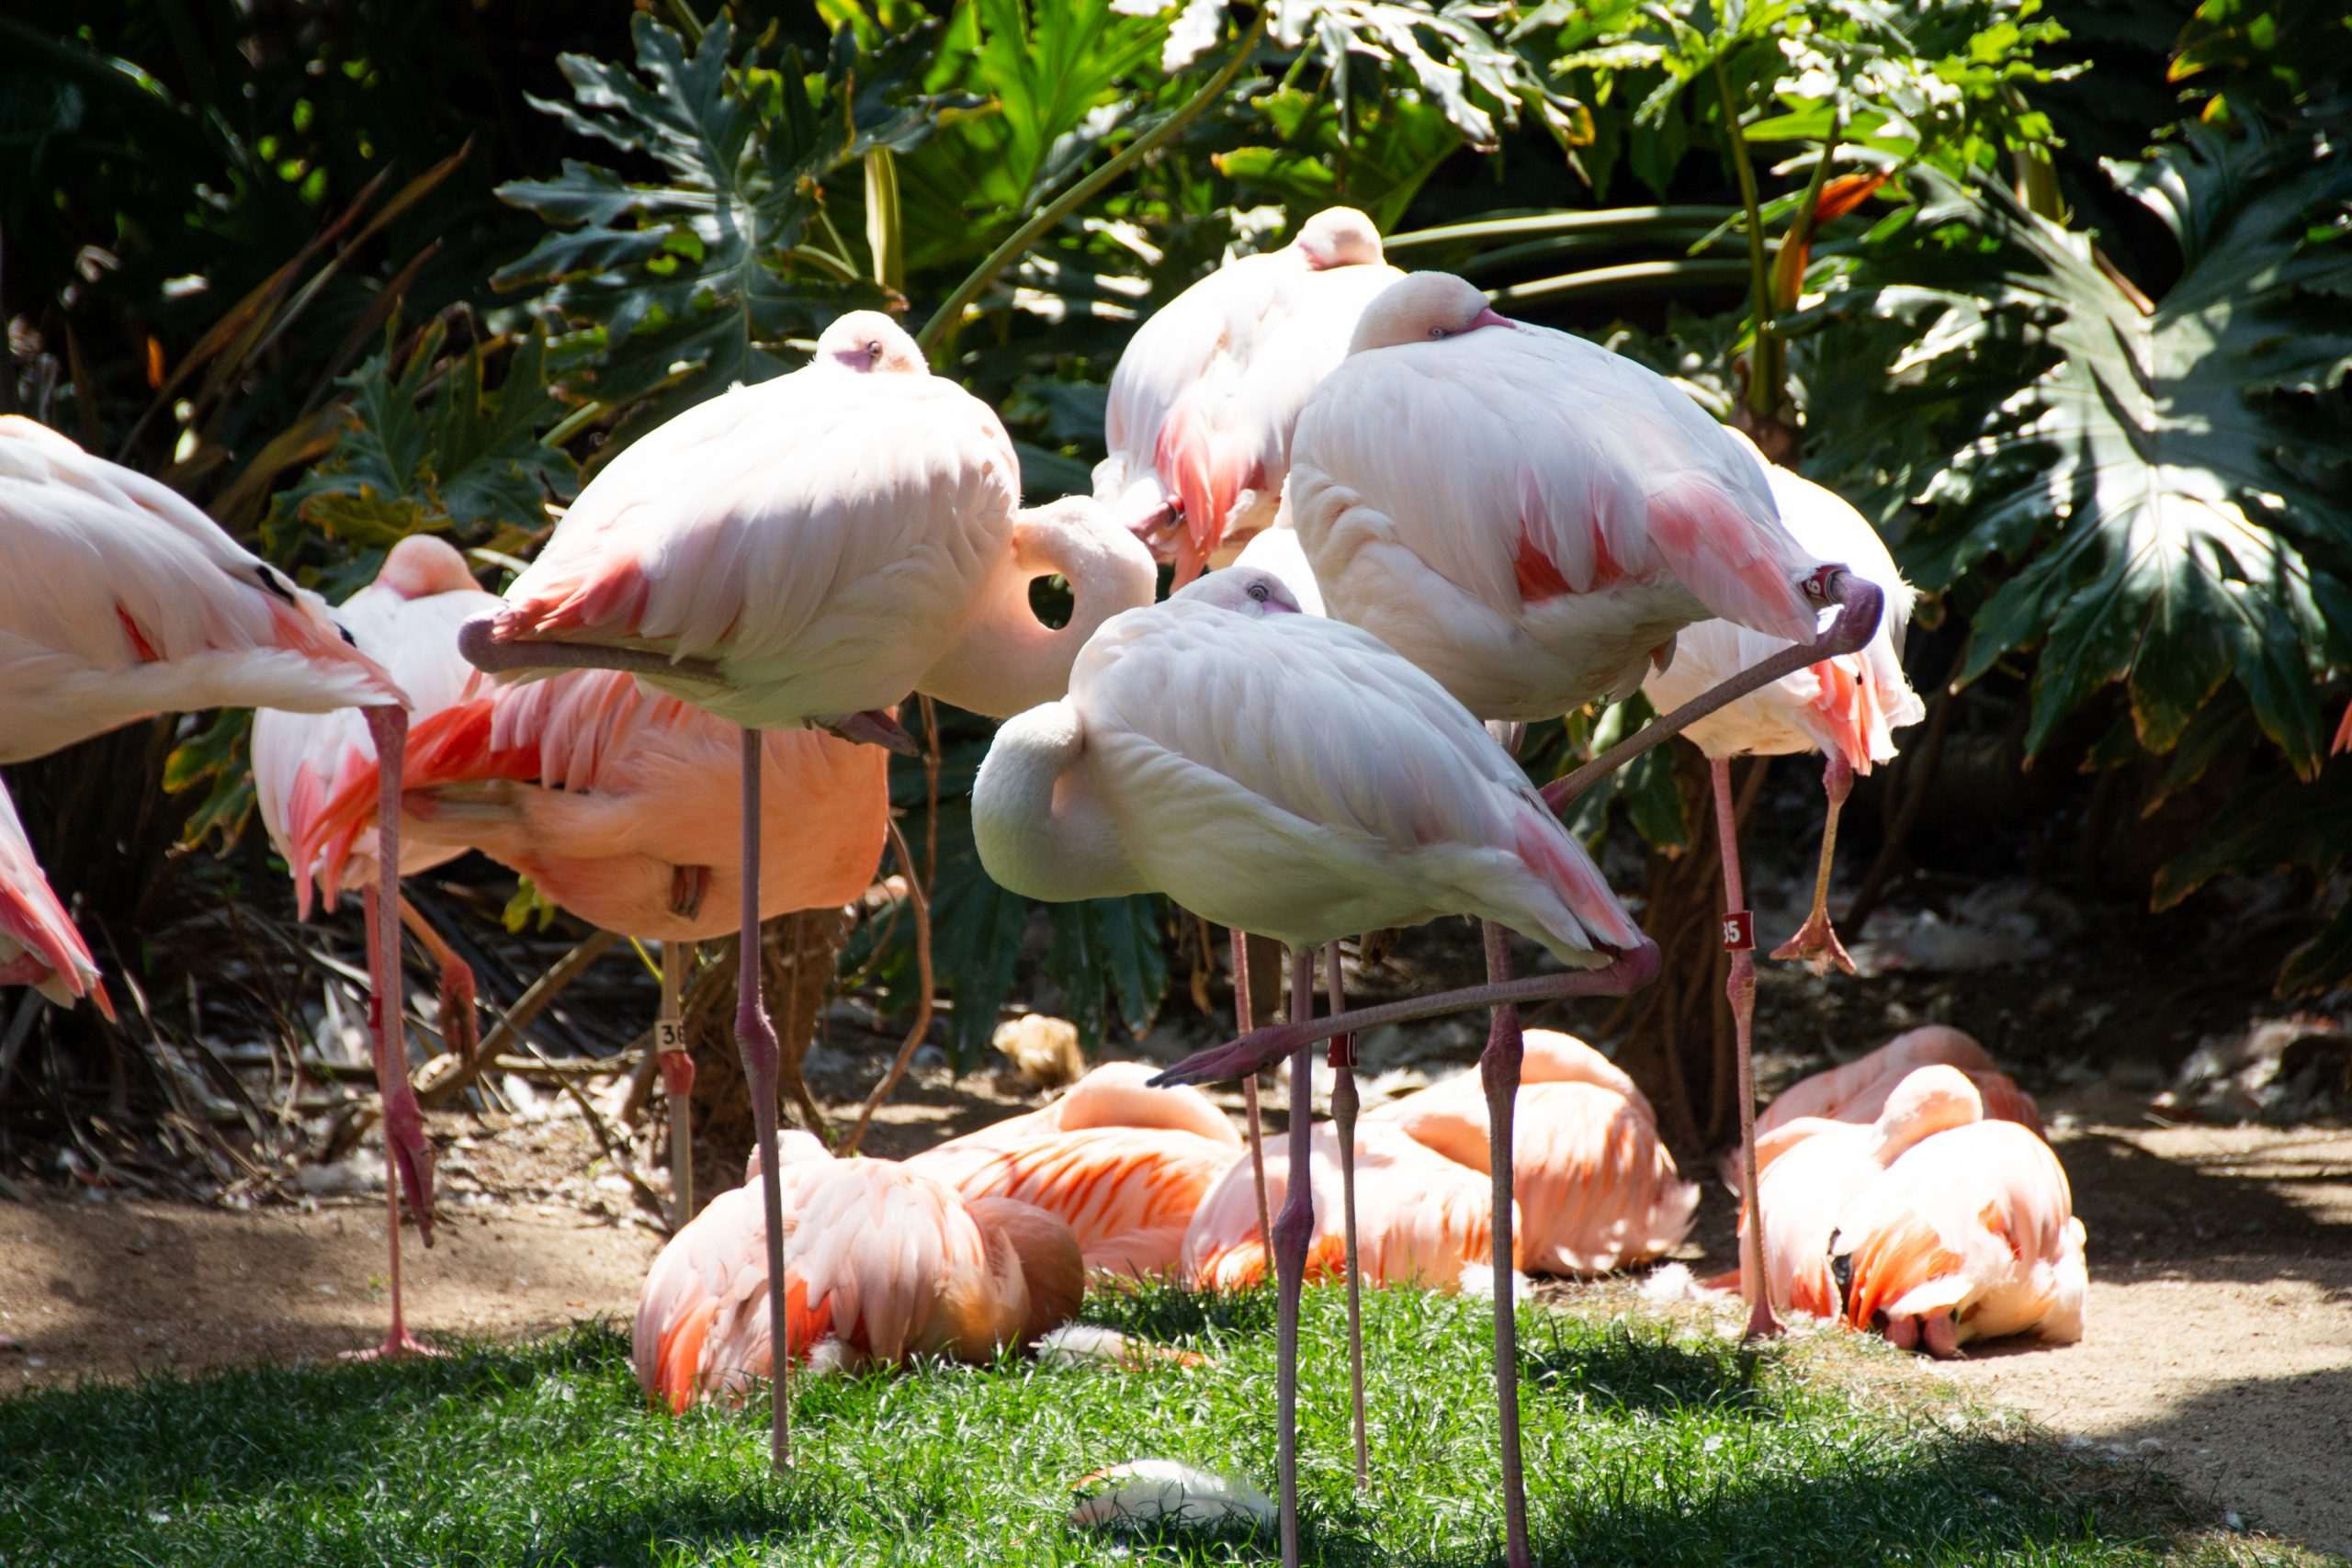 Group Of Flamingos On Grass Near Trees And Plants